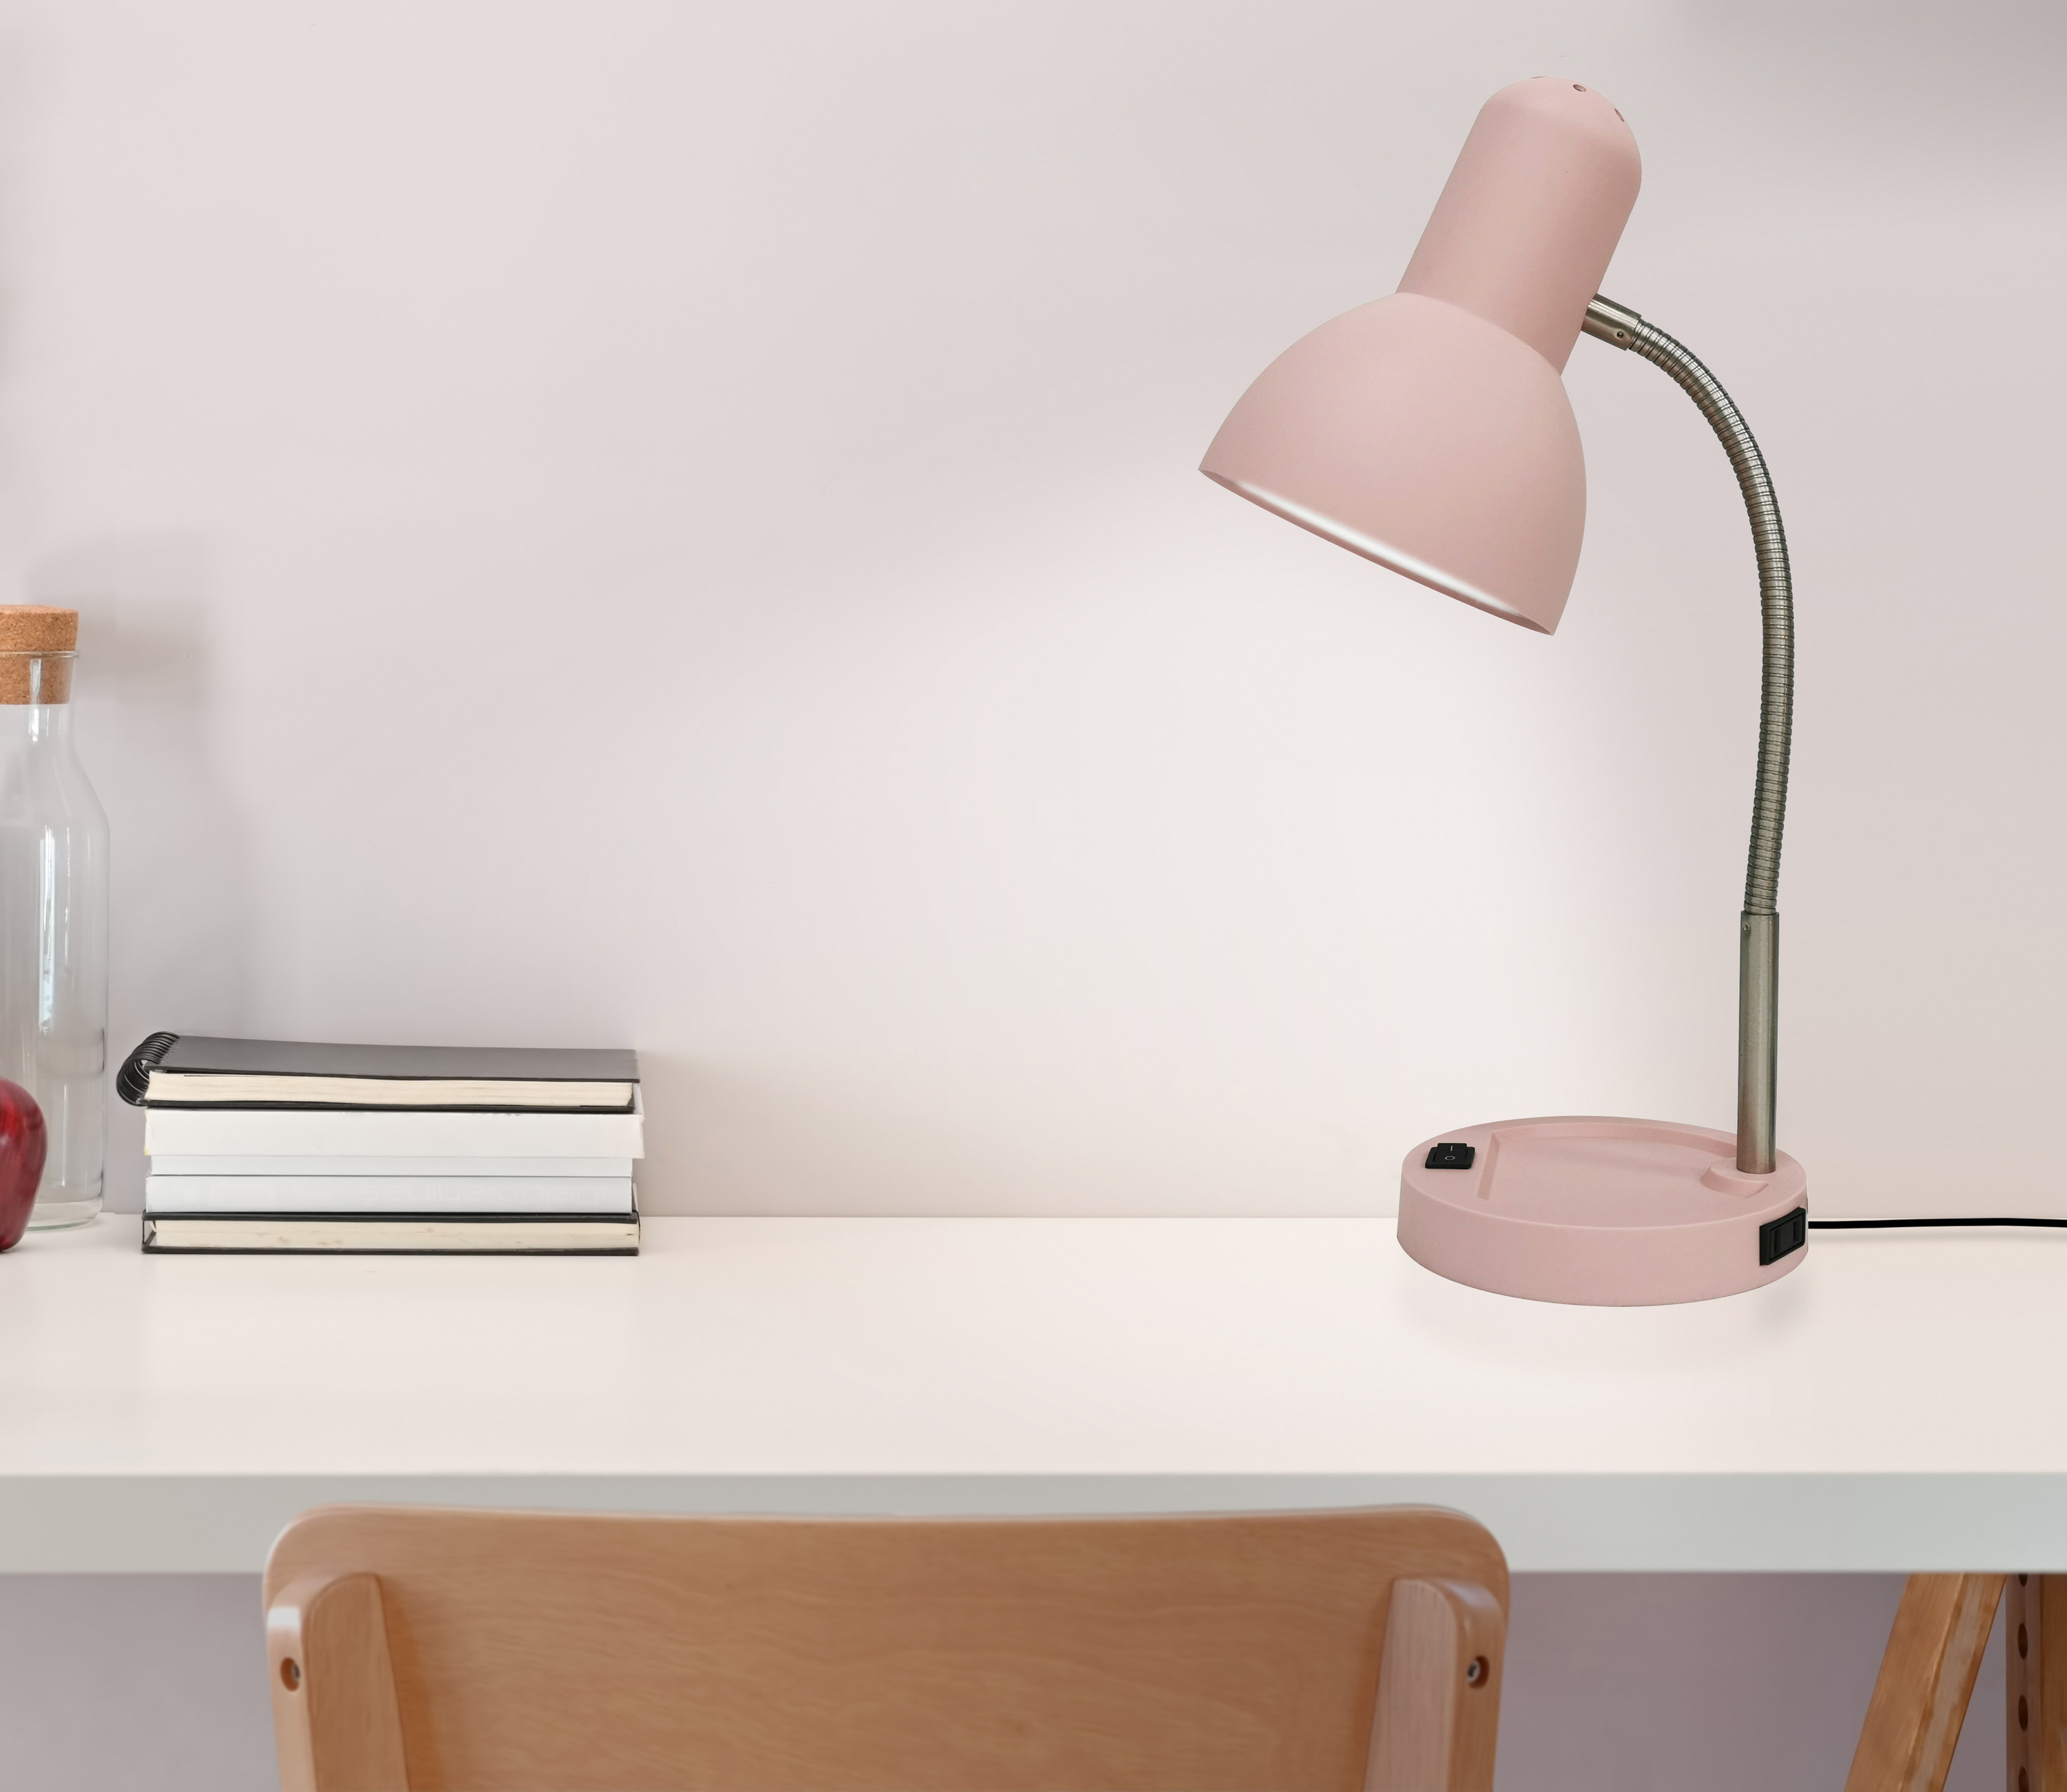 The desk lamp in pink in a minimalist room